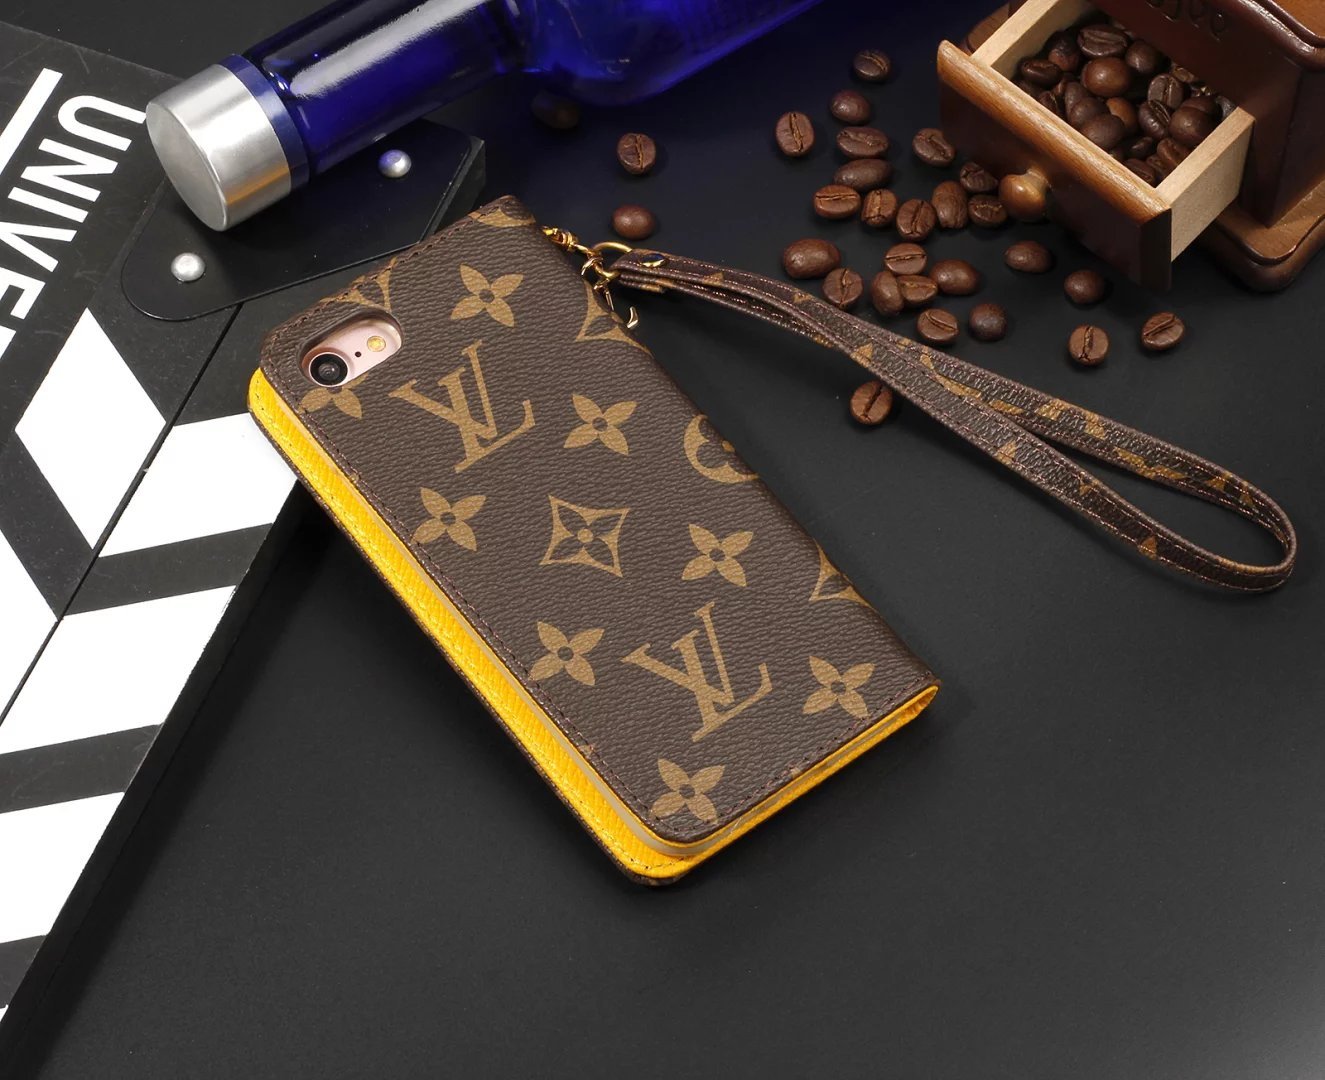 iphone handyhülle mit foto iphone hüllen bestellen Louis Vuitton iphone7 hülle veröffentlichung iphone 6 iphone 7 a7 arbon iphone 7 original hülle iphone 7 hülle coole hüllen für iphone 7 handyschalen bedrucken las7n